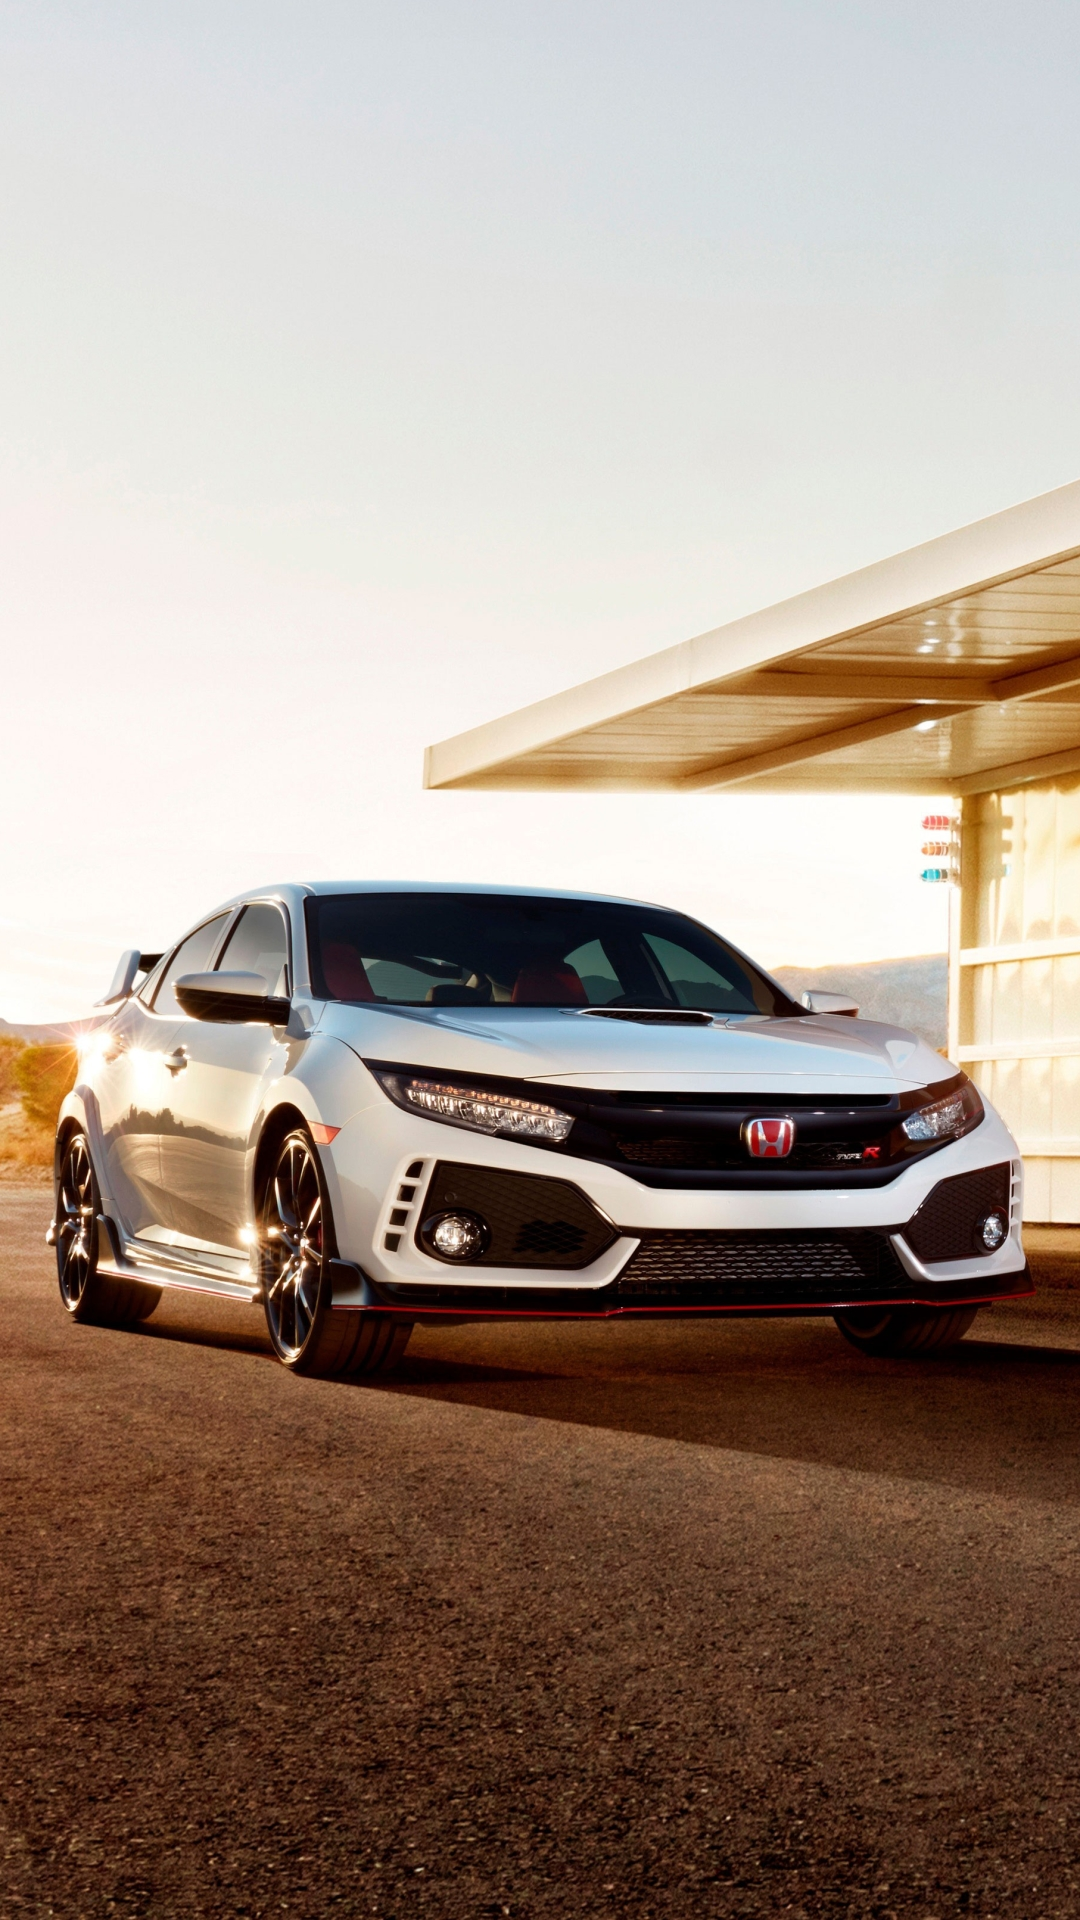 Vehicles Honda Civic Type R 1080x1920 Wallpaper Id 694042